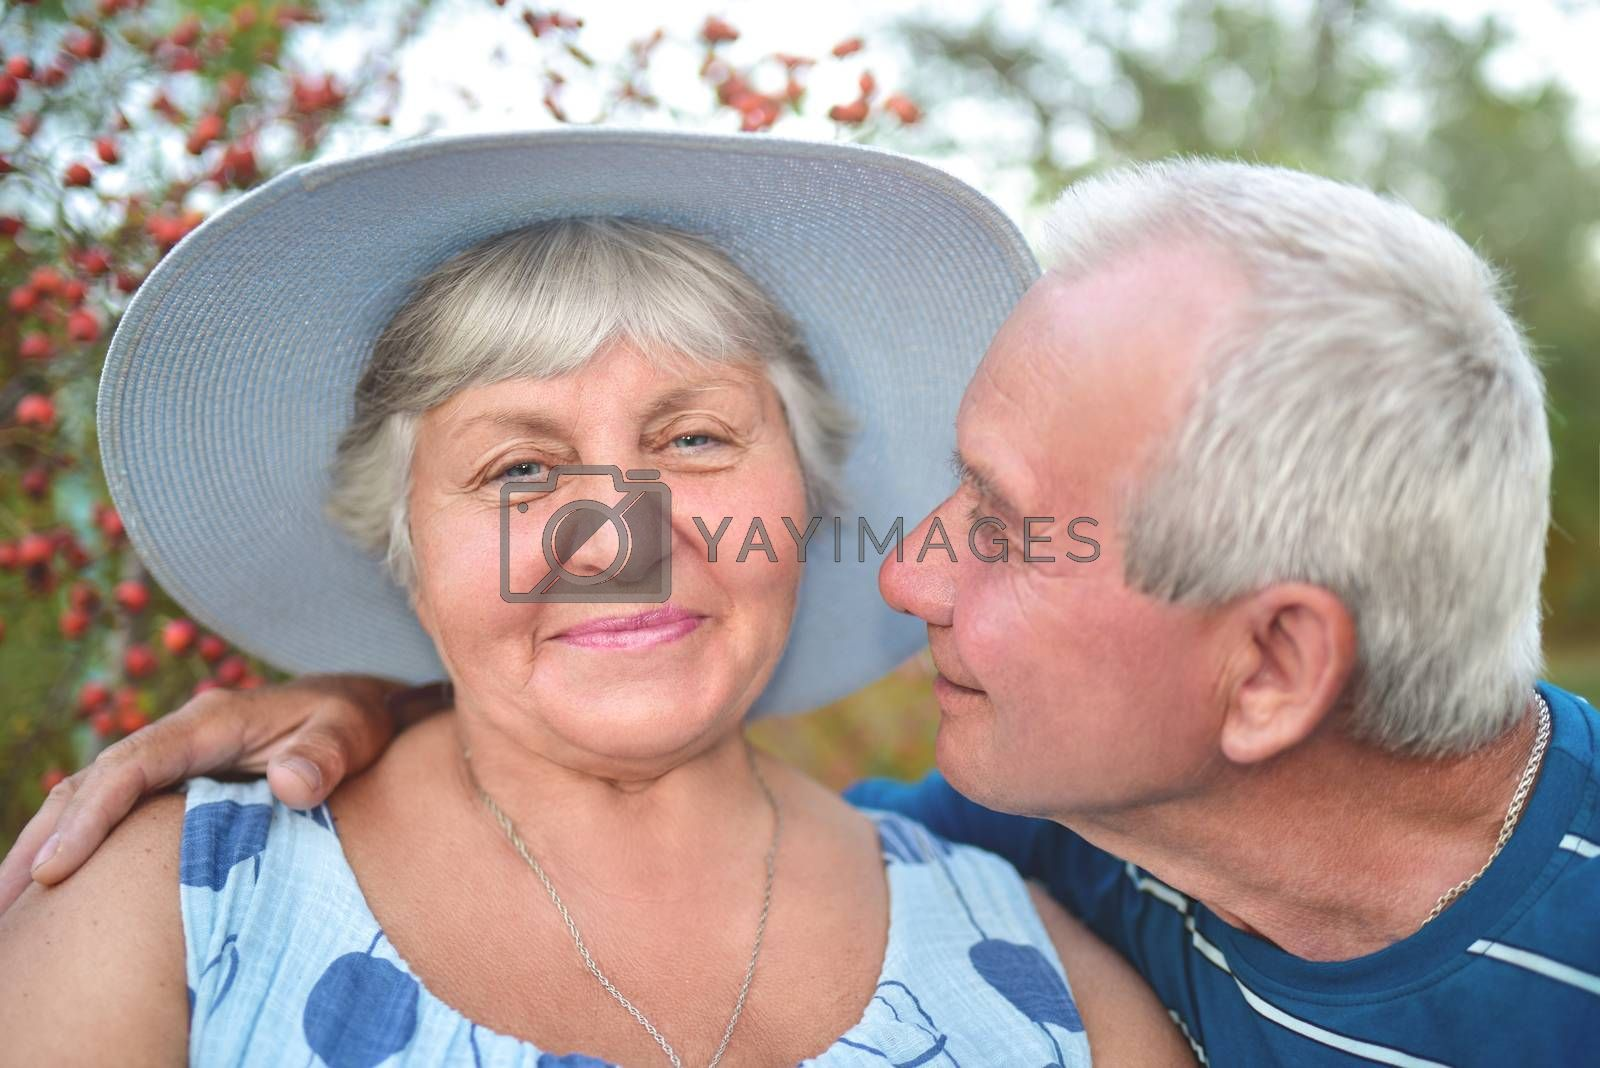 Authentic outdoor shot of aging couple having fun in the garden and blessed with love. During their game man is trying to kiss his wife and she is smiling. Love and family concept.